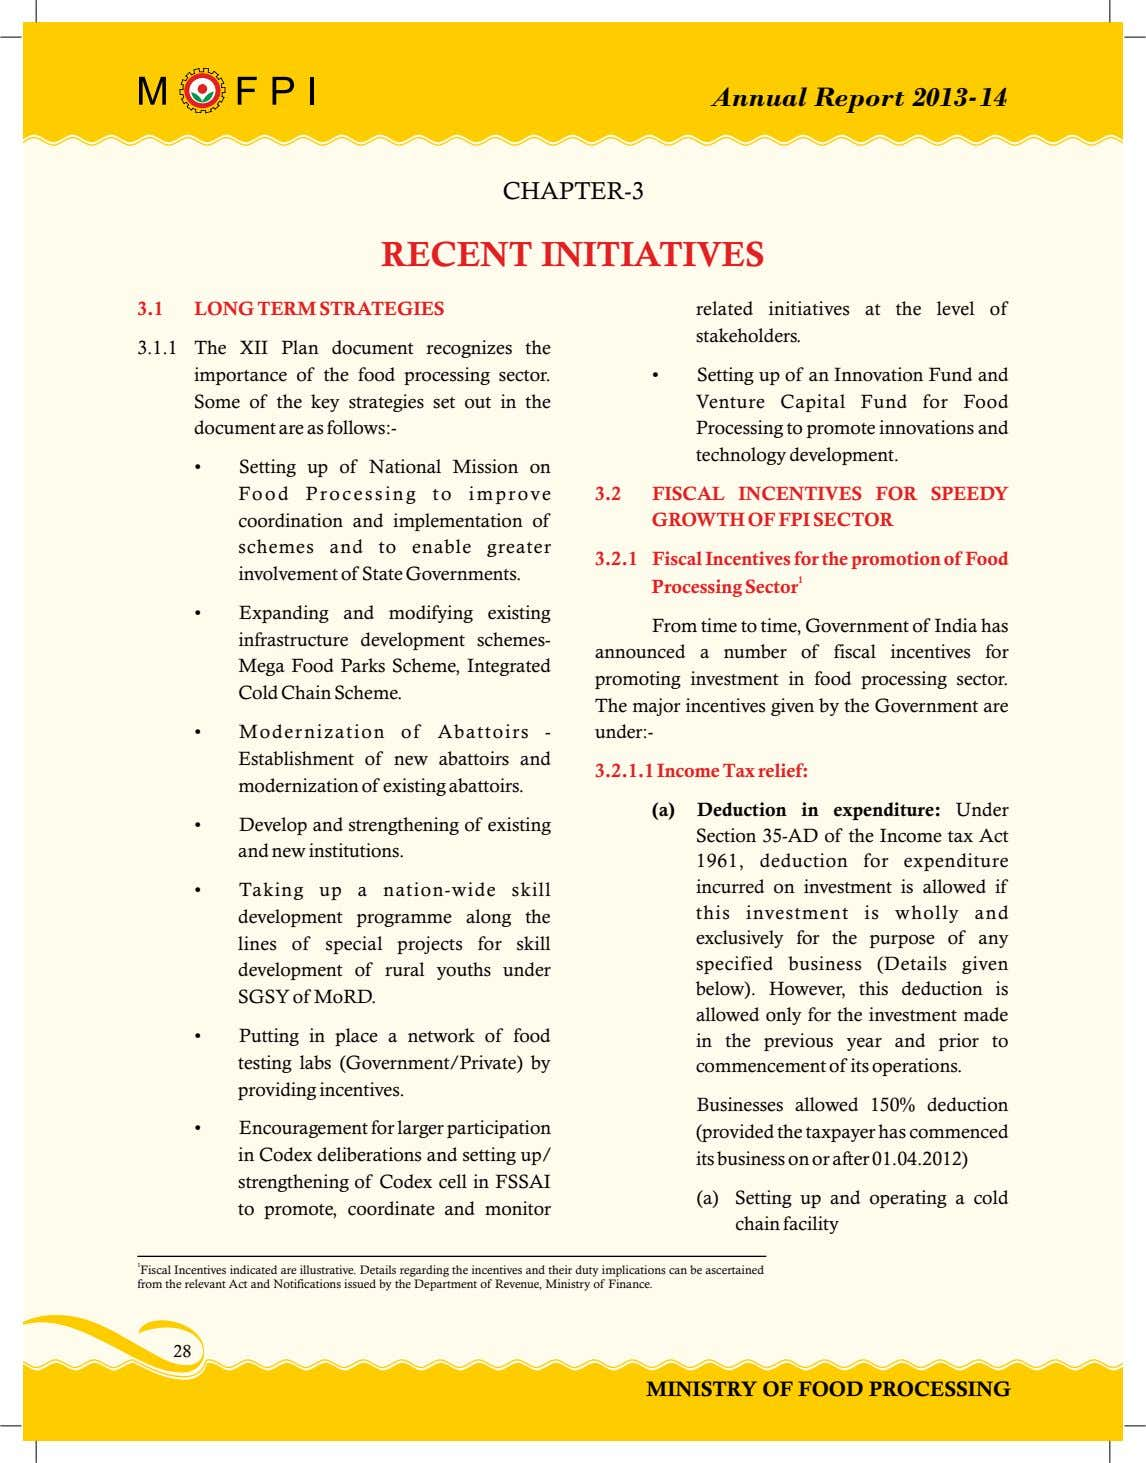 Annual Report 2013-14 CHAPTER-3 RECENT INITIATIVES 3.1 LONG TERM STRATEGIES related initiatives at the level